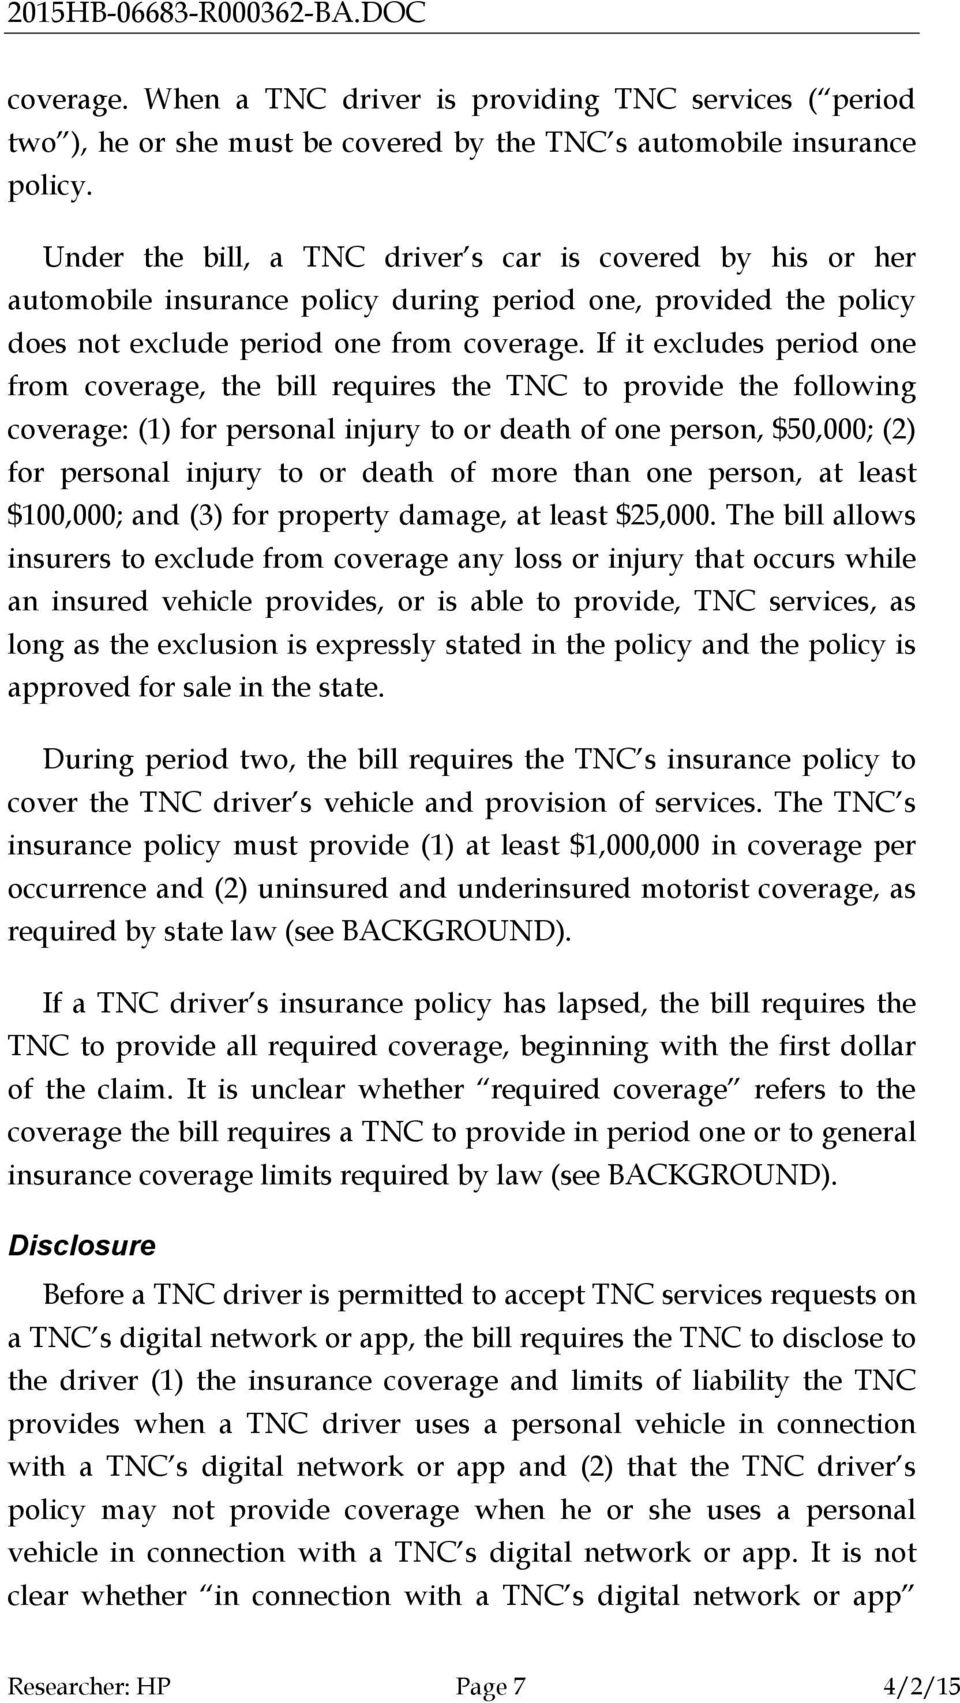 If it excludes period one from coverage, the bill requires the TNC to provide the following coverage: (1) for personal injury to or death of one person, $50,000; (2) for personal injury to or death